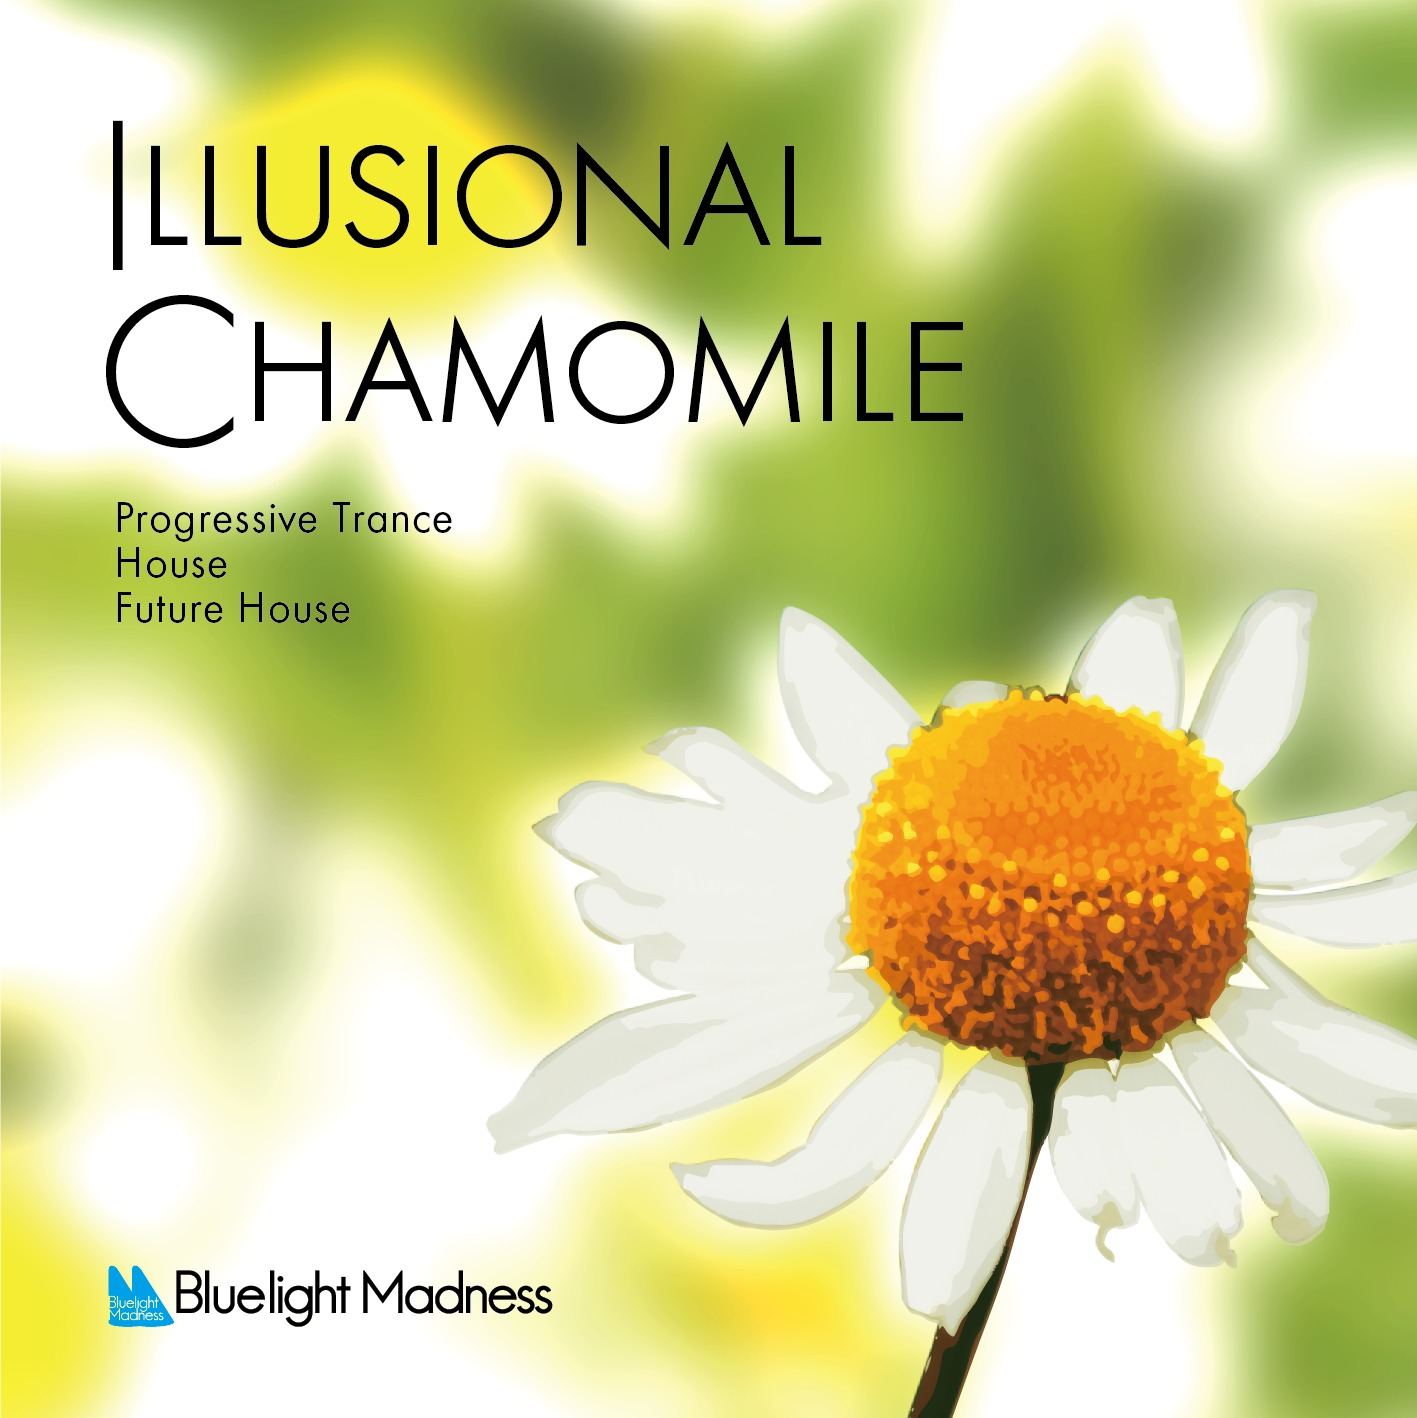 Illusional Chamomile